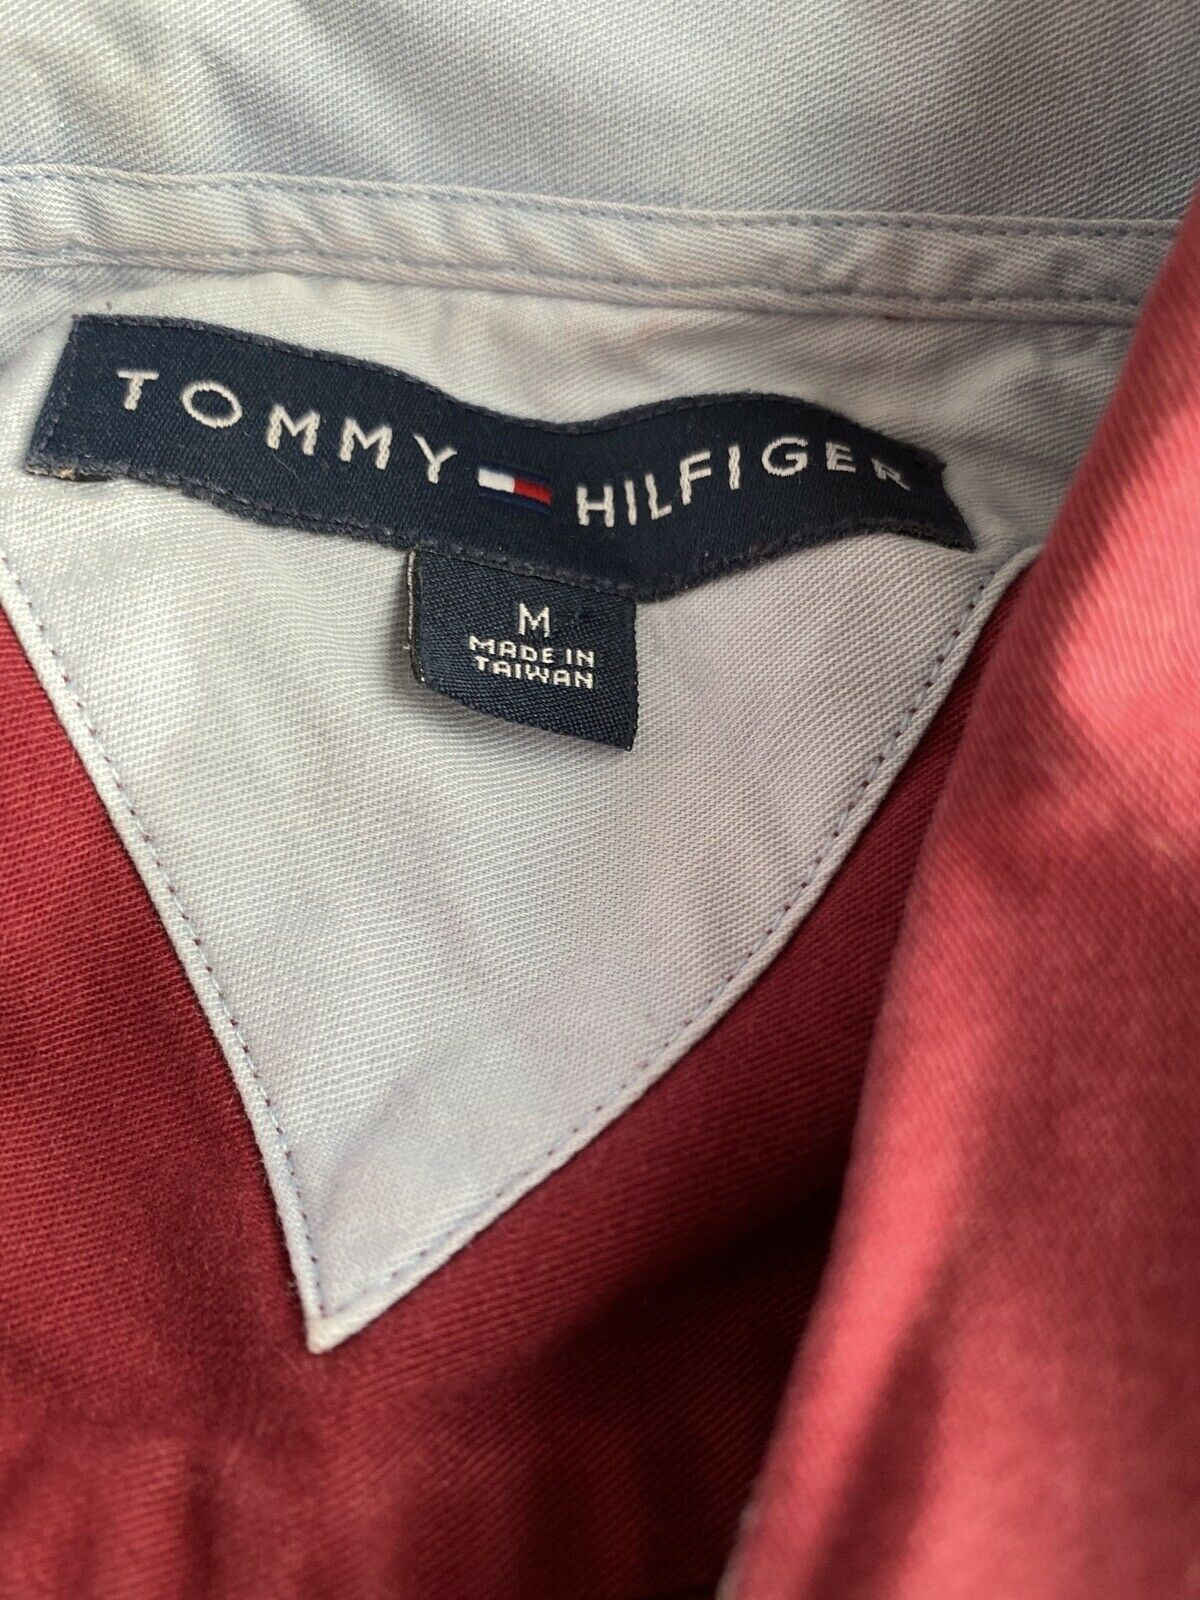 mens tommy hilfiger shirts medium long sleeve - image 2